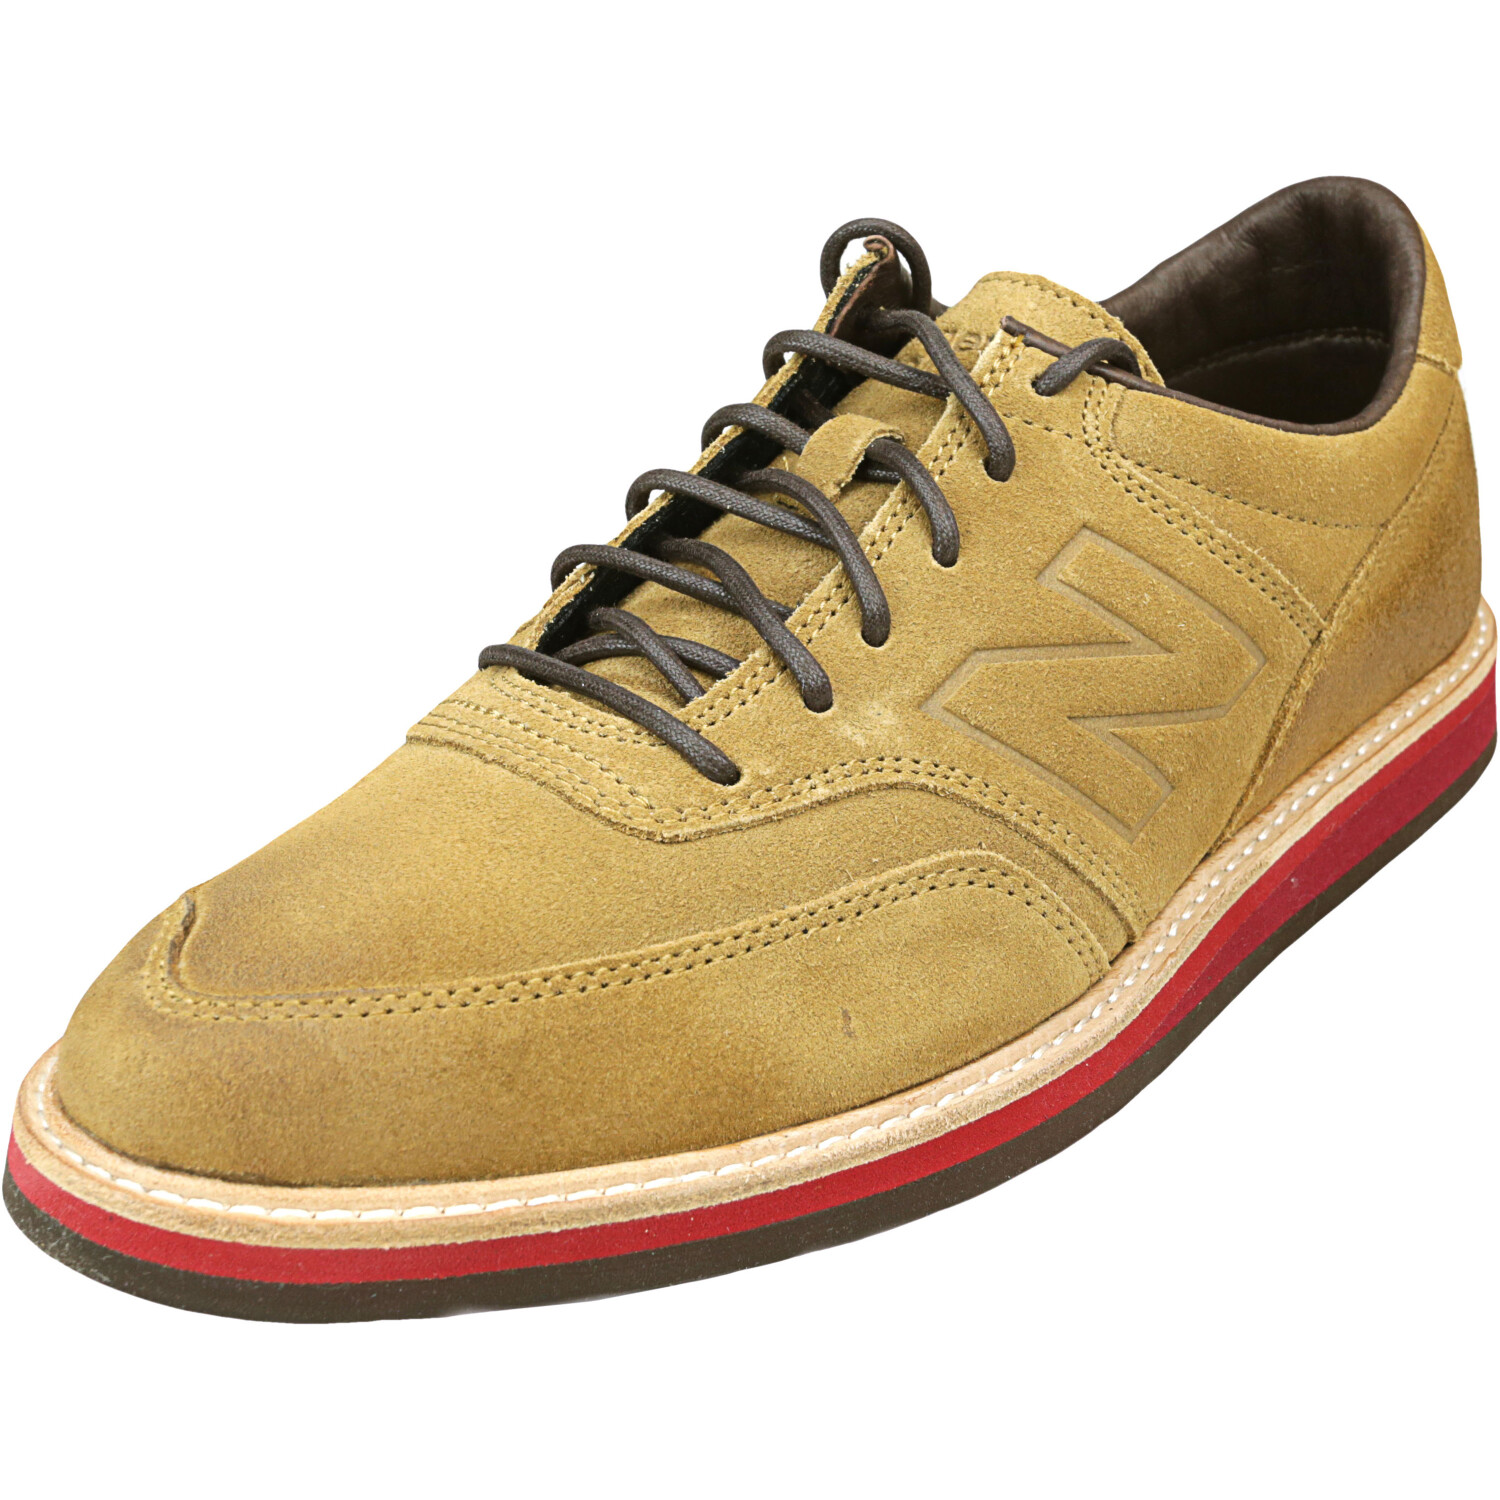 New Balance Men's Md1100 Db Ankle-High Suede Sneaker - 7M